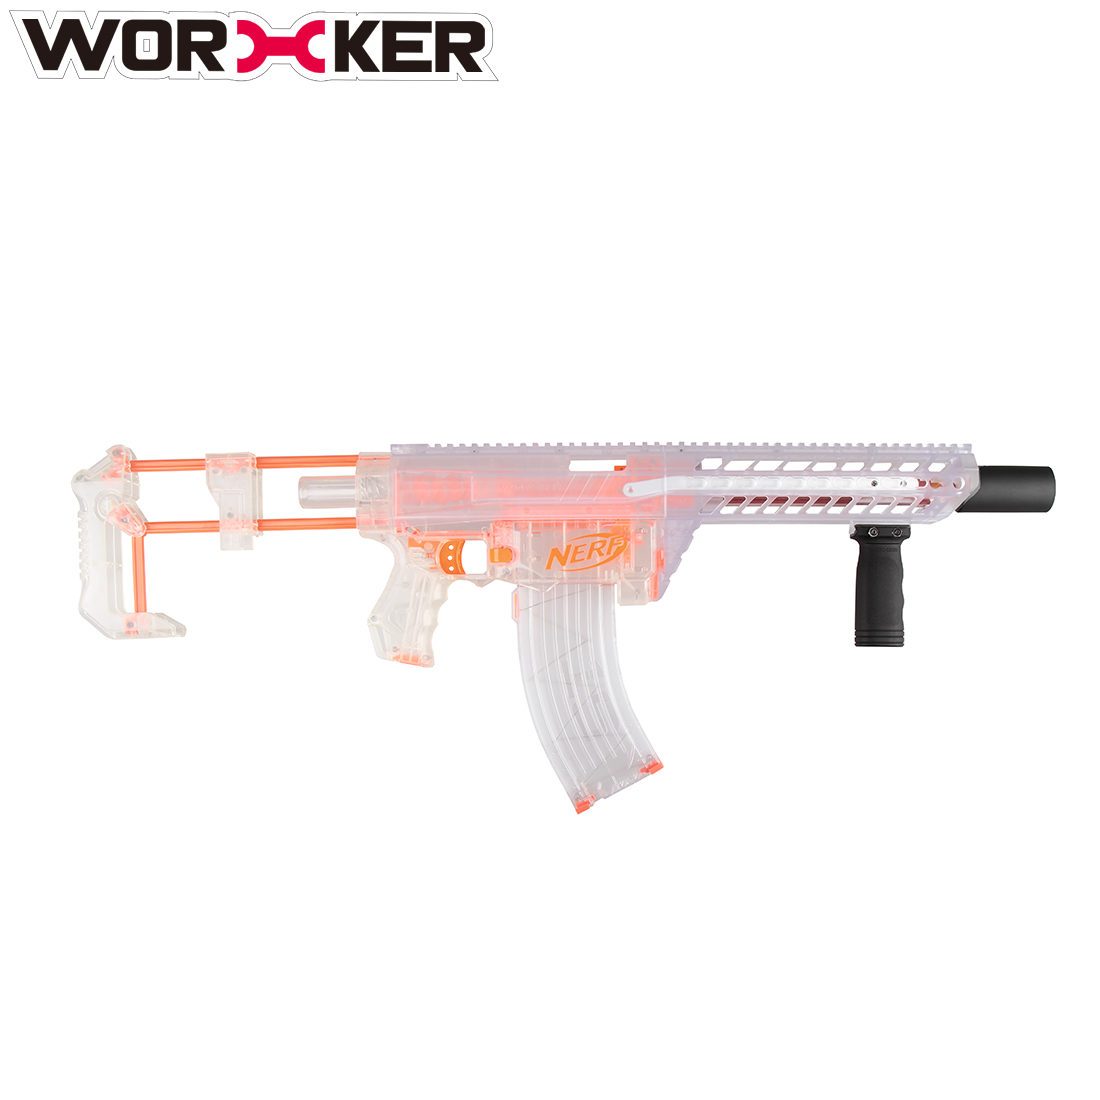 Worker Modified Toy Accessories Integrated Built-in Front Pull-down Kit for Nerf Retaliator - Transparent цена и фото